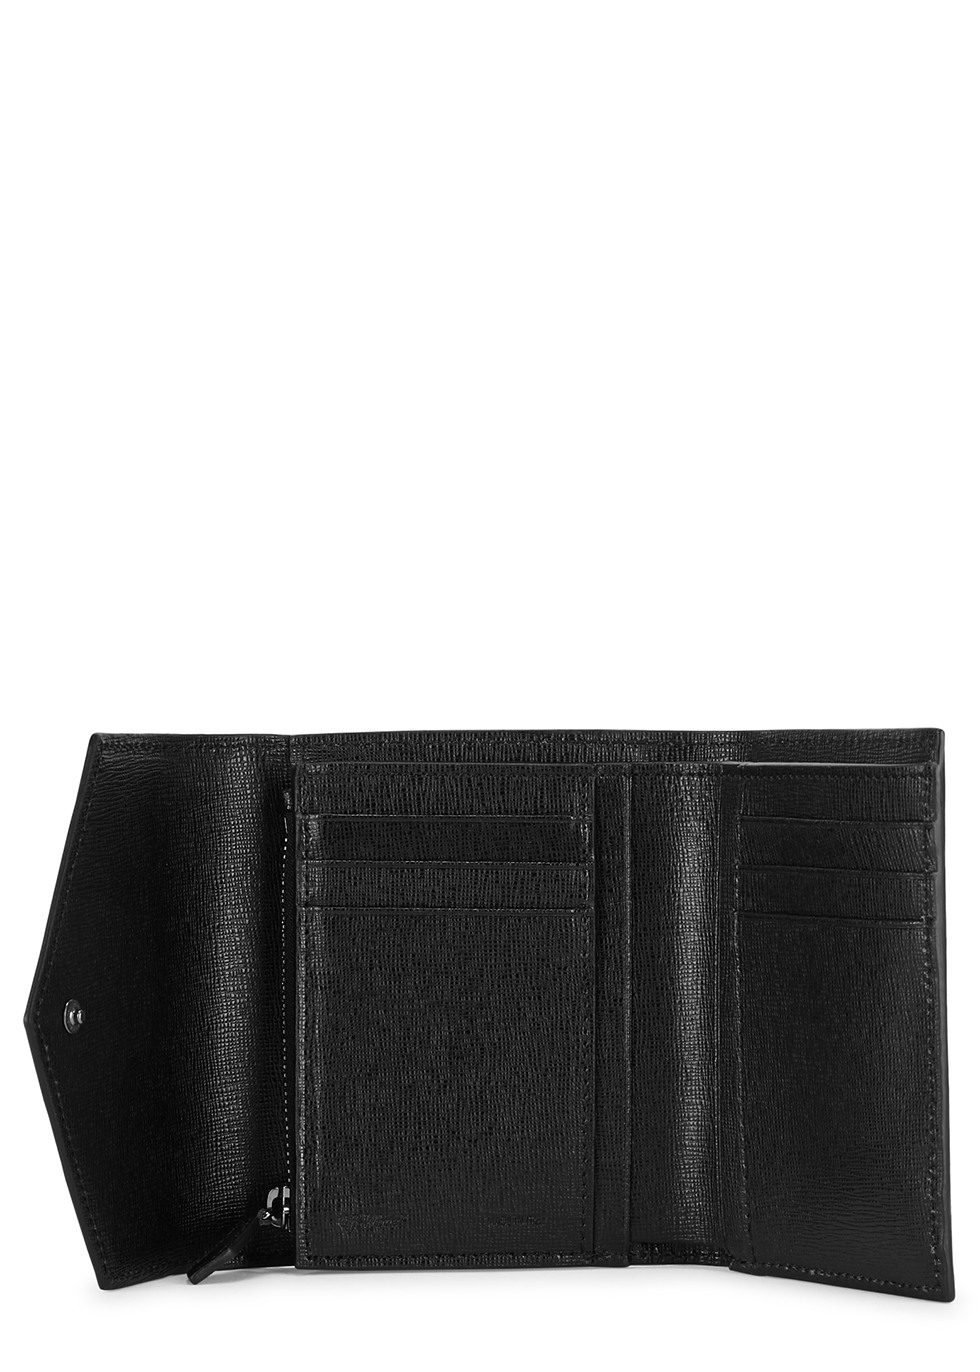 Sculpture black grained leather wallet - Off-White